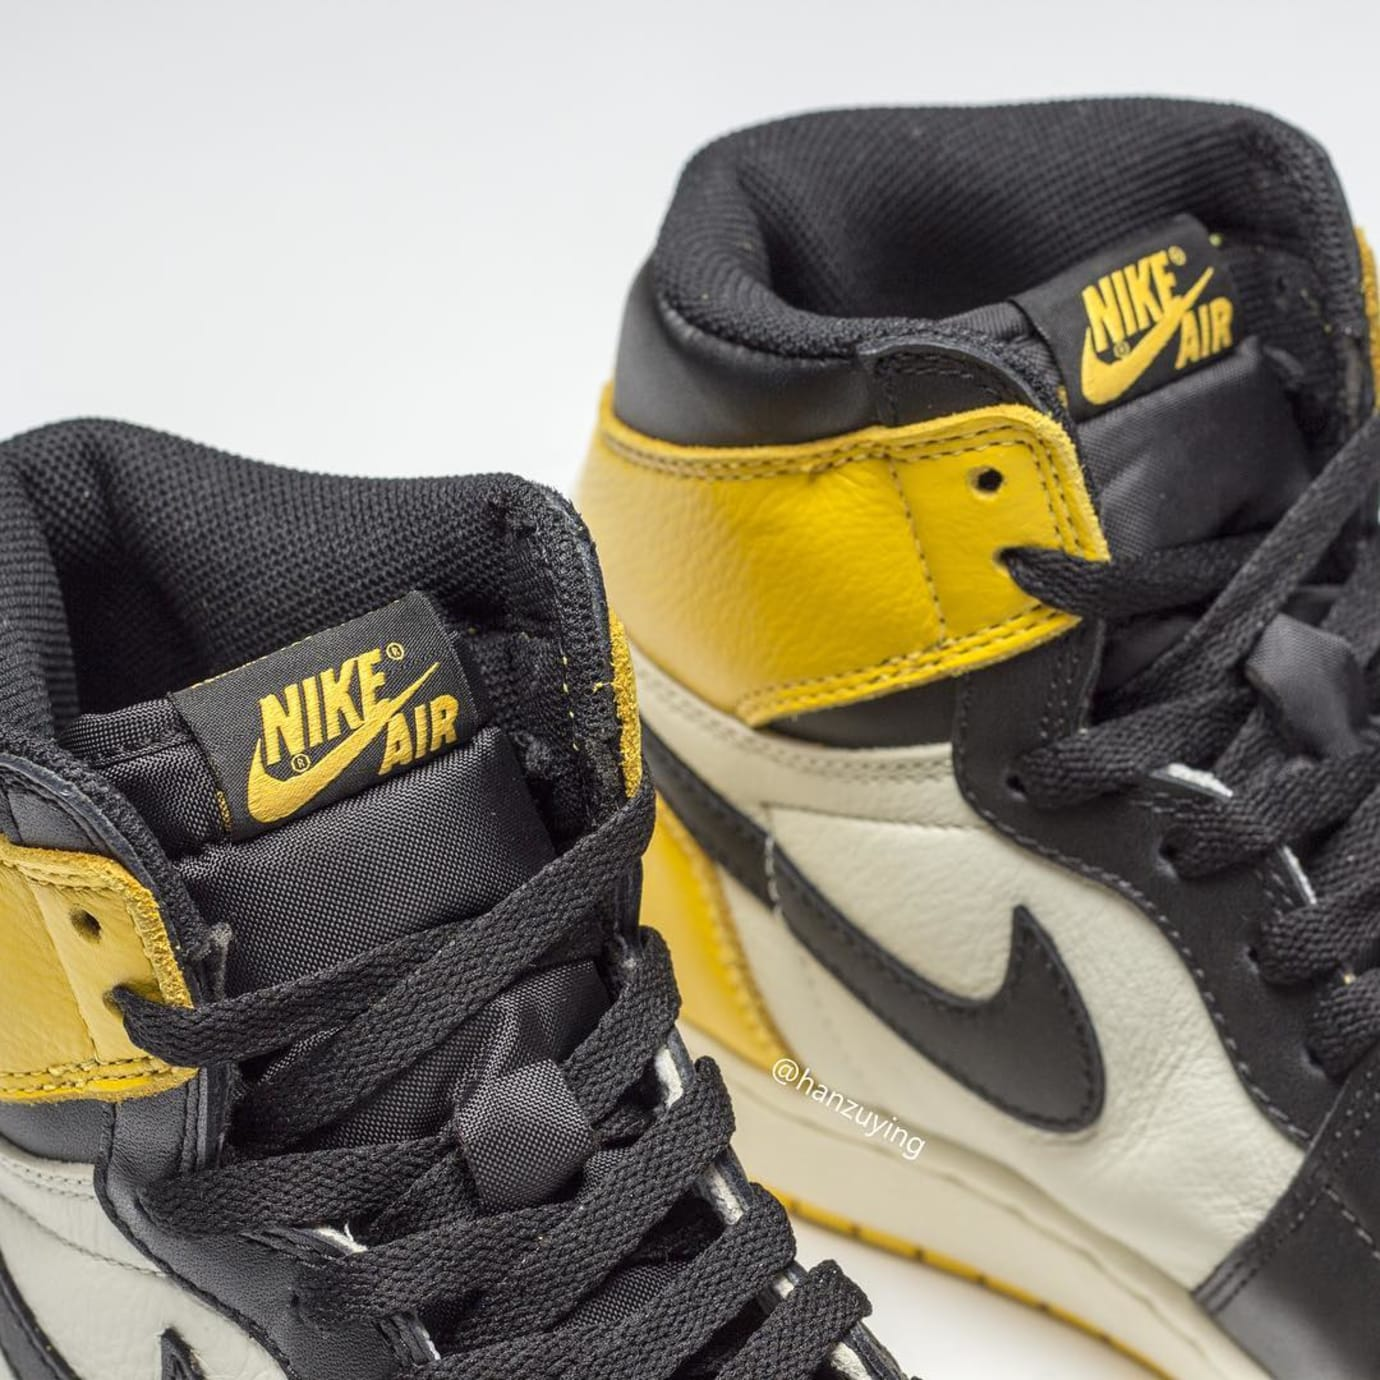 Air Jordan 1 Retro High OG 'Yellow Toe' AR1020-700 Tongue